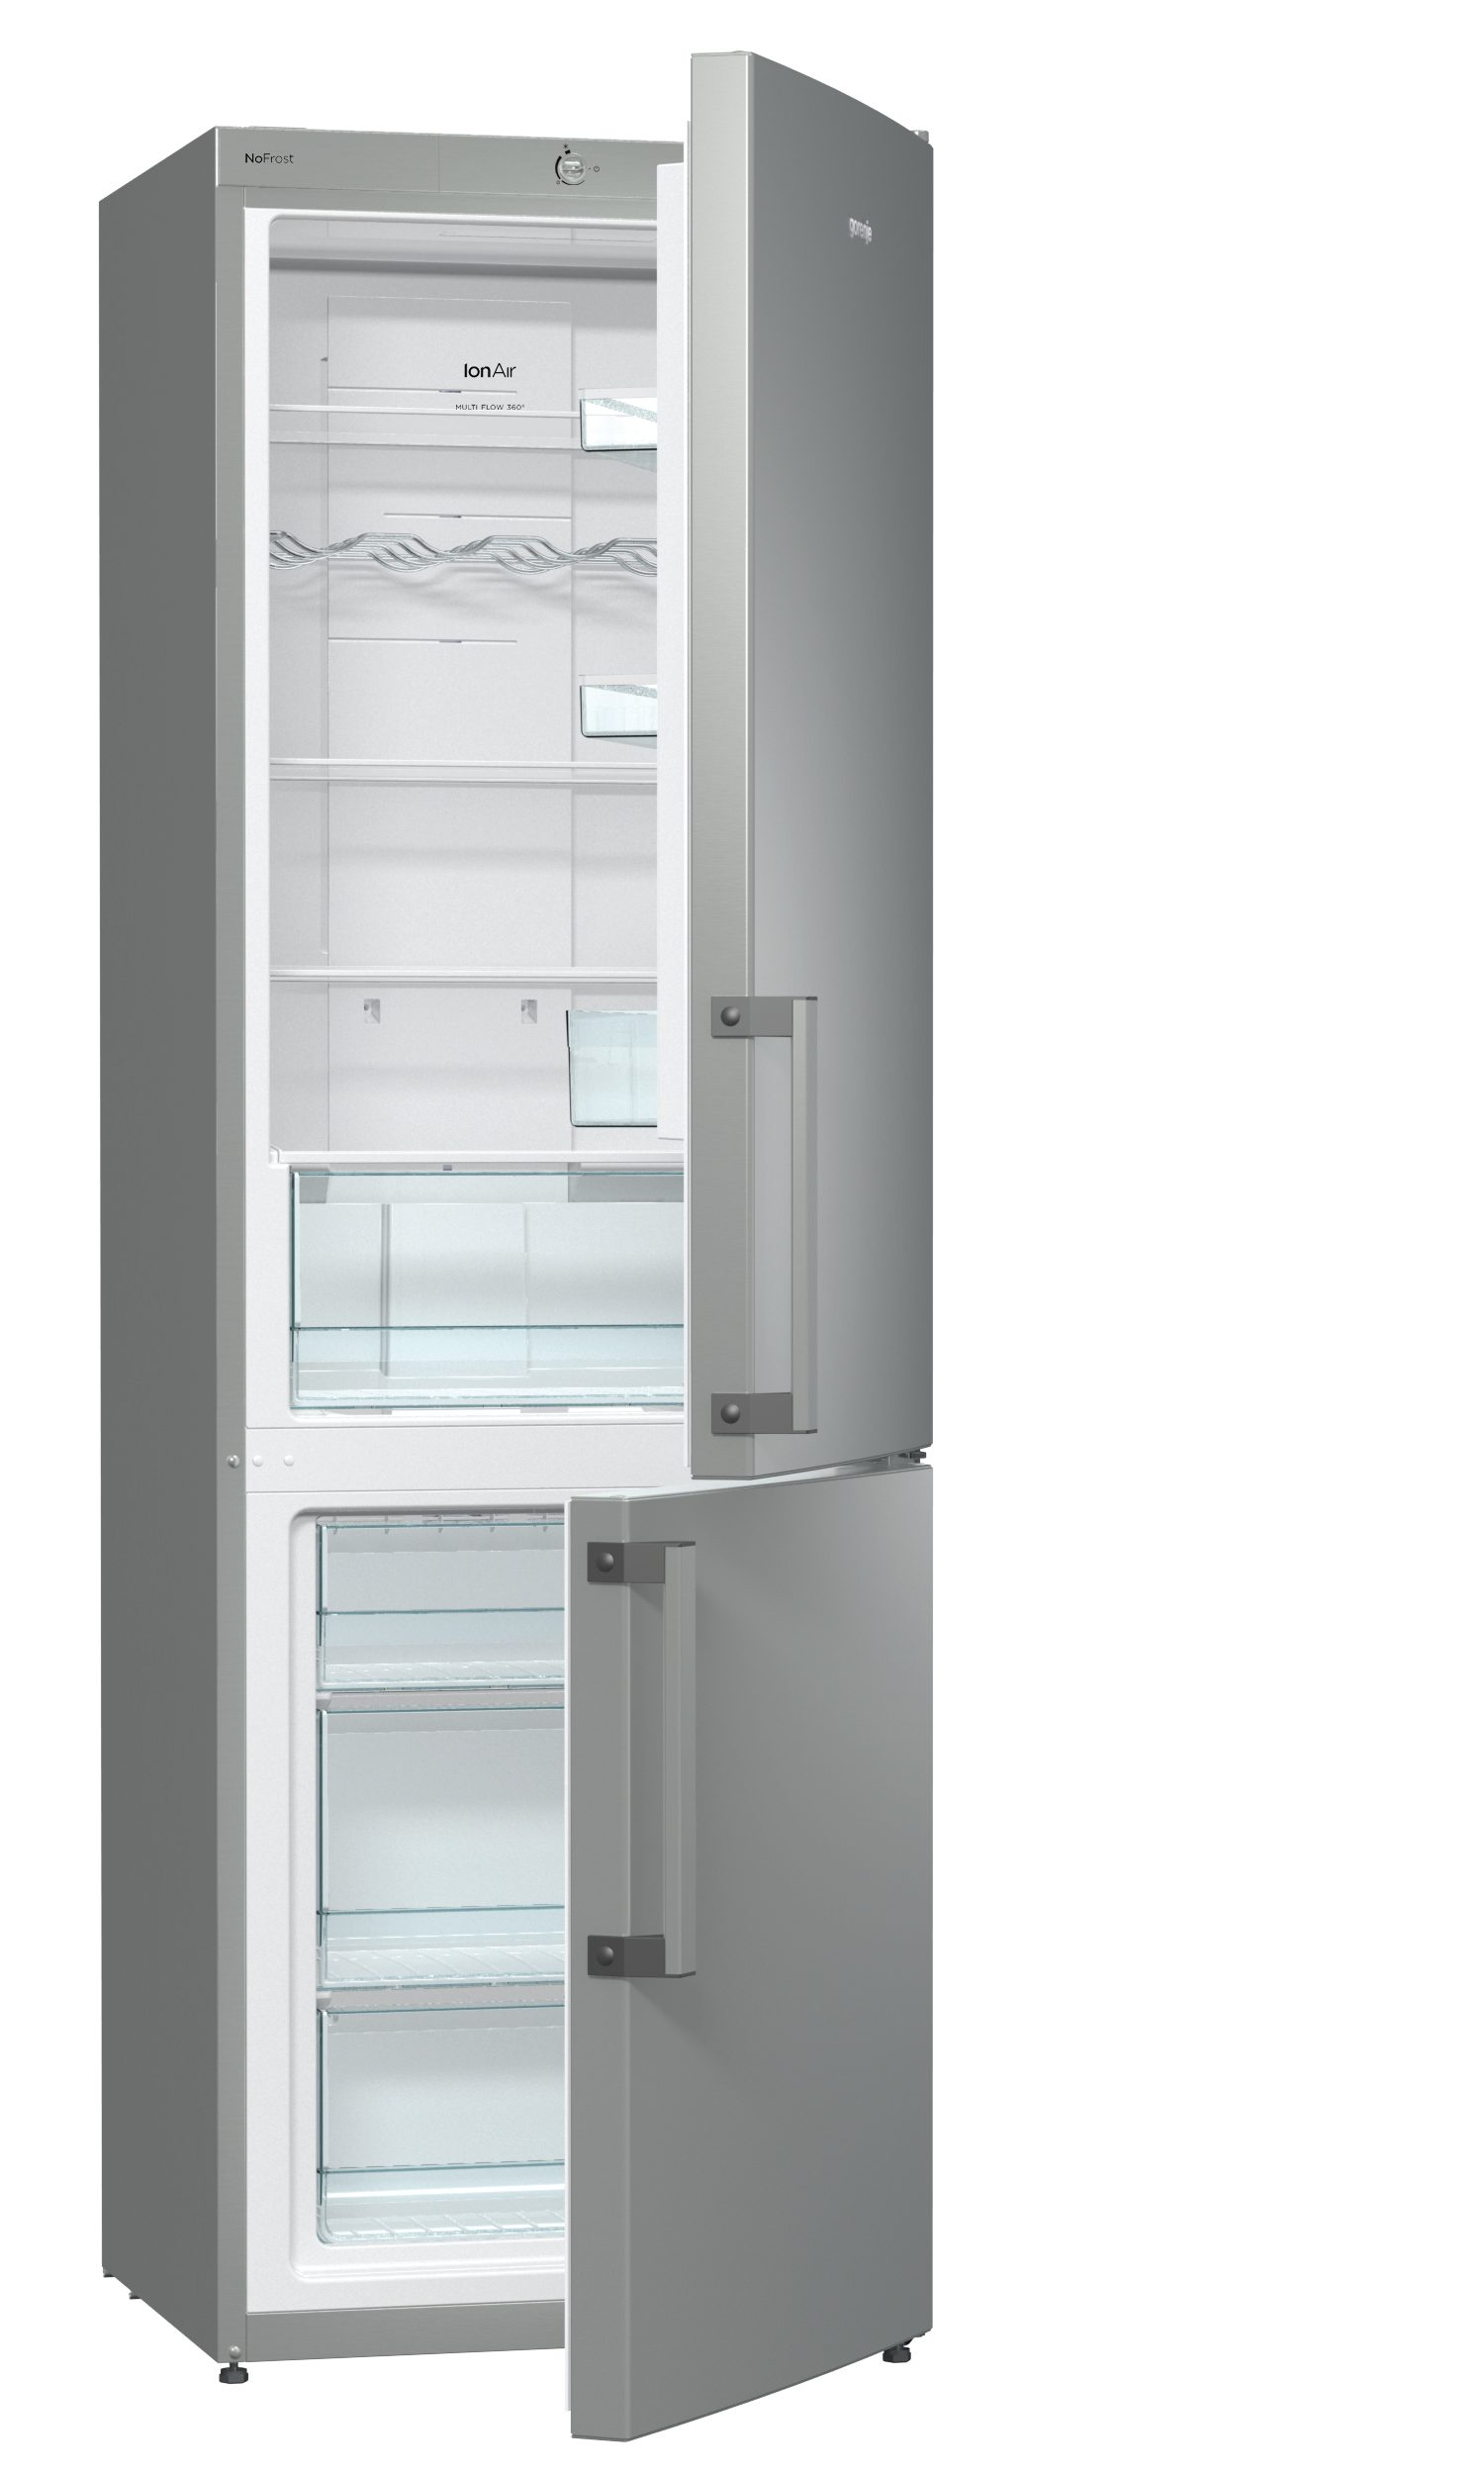 frigo combinato da libera installazione nrk6191cx gorenje. Black Bedroom Furniture Sets. Home Design Ideas